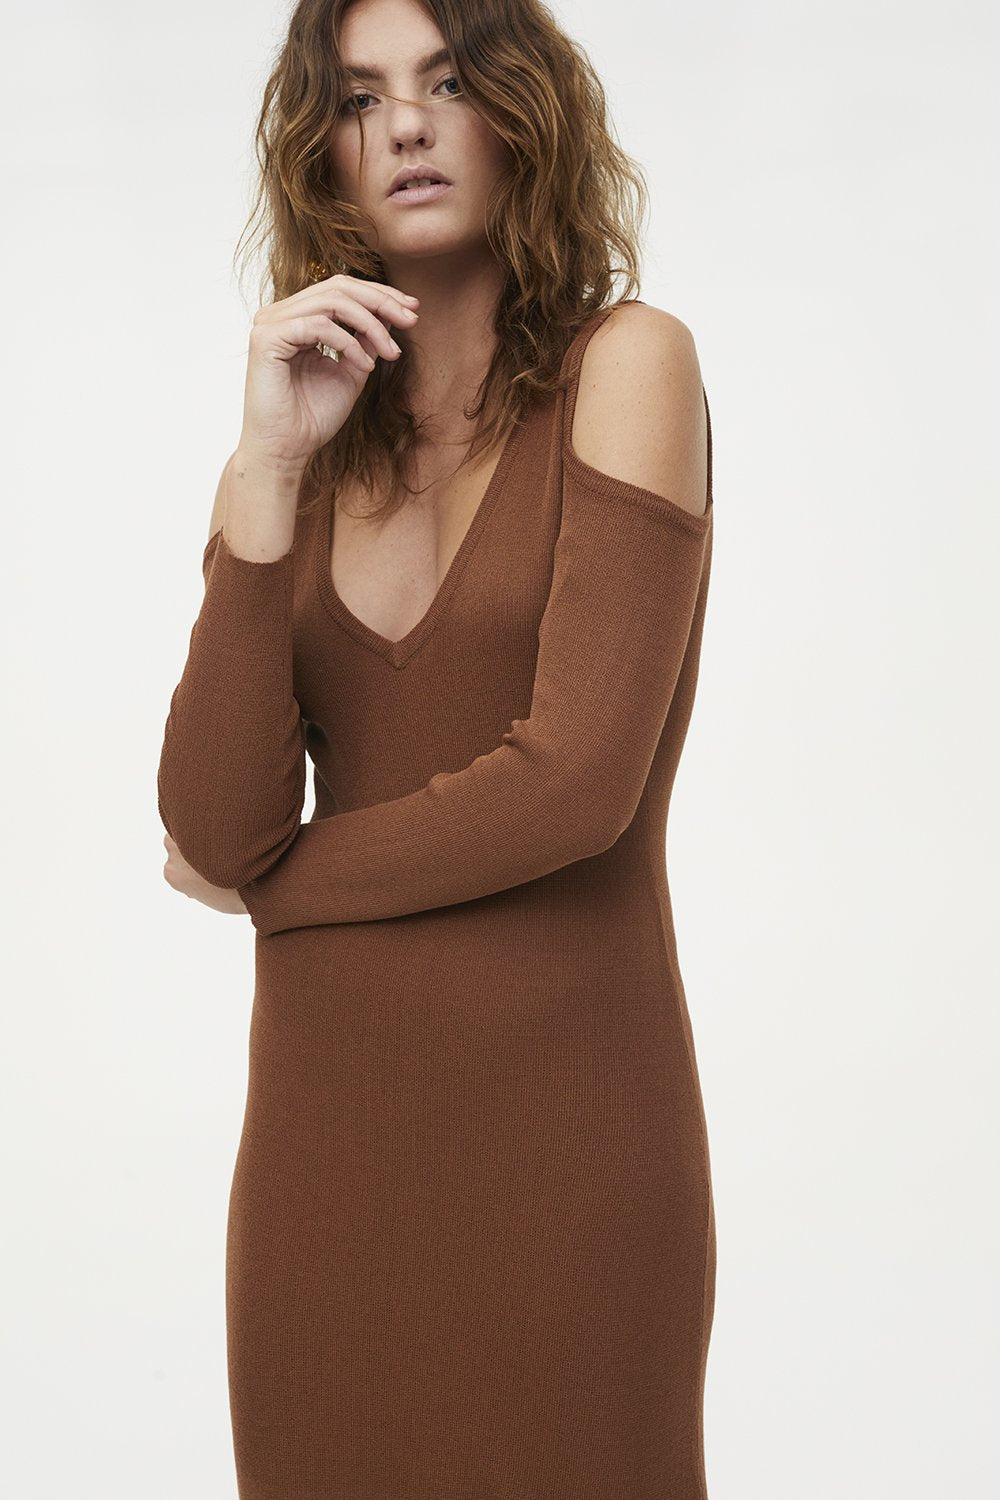 Manning Cartell Prime Time Dress - Chestnut